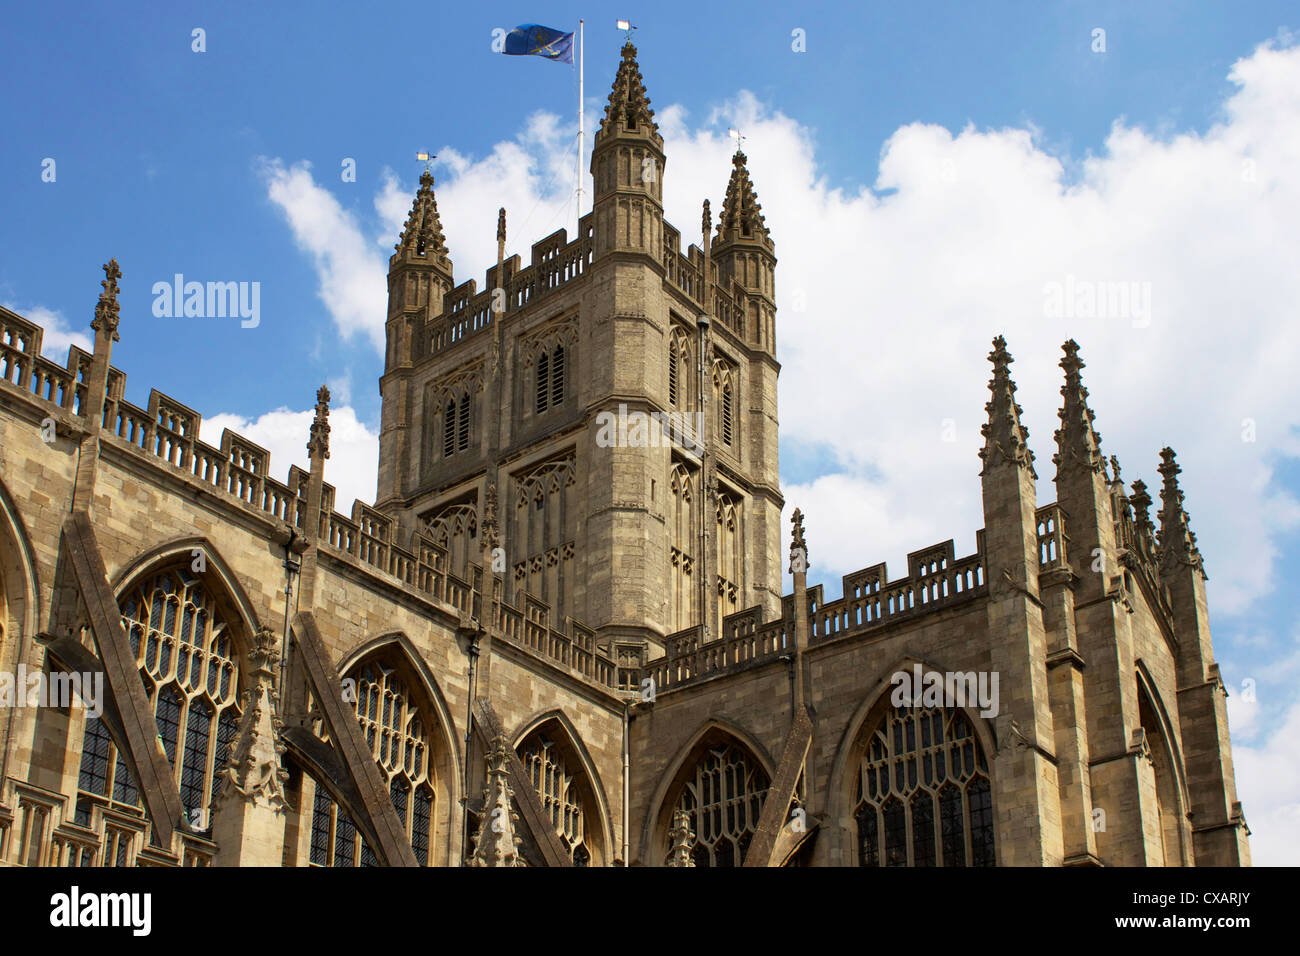 Bath Abbey, Bath, UNESCO World Heriage Site, Avon, England, United Kingdom, Europe - Stock Image